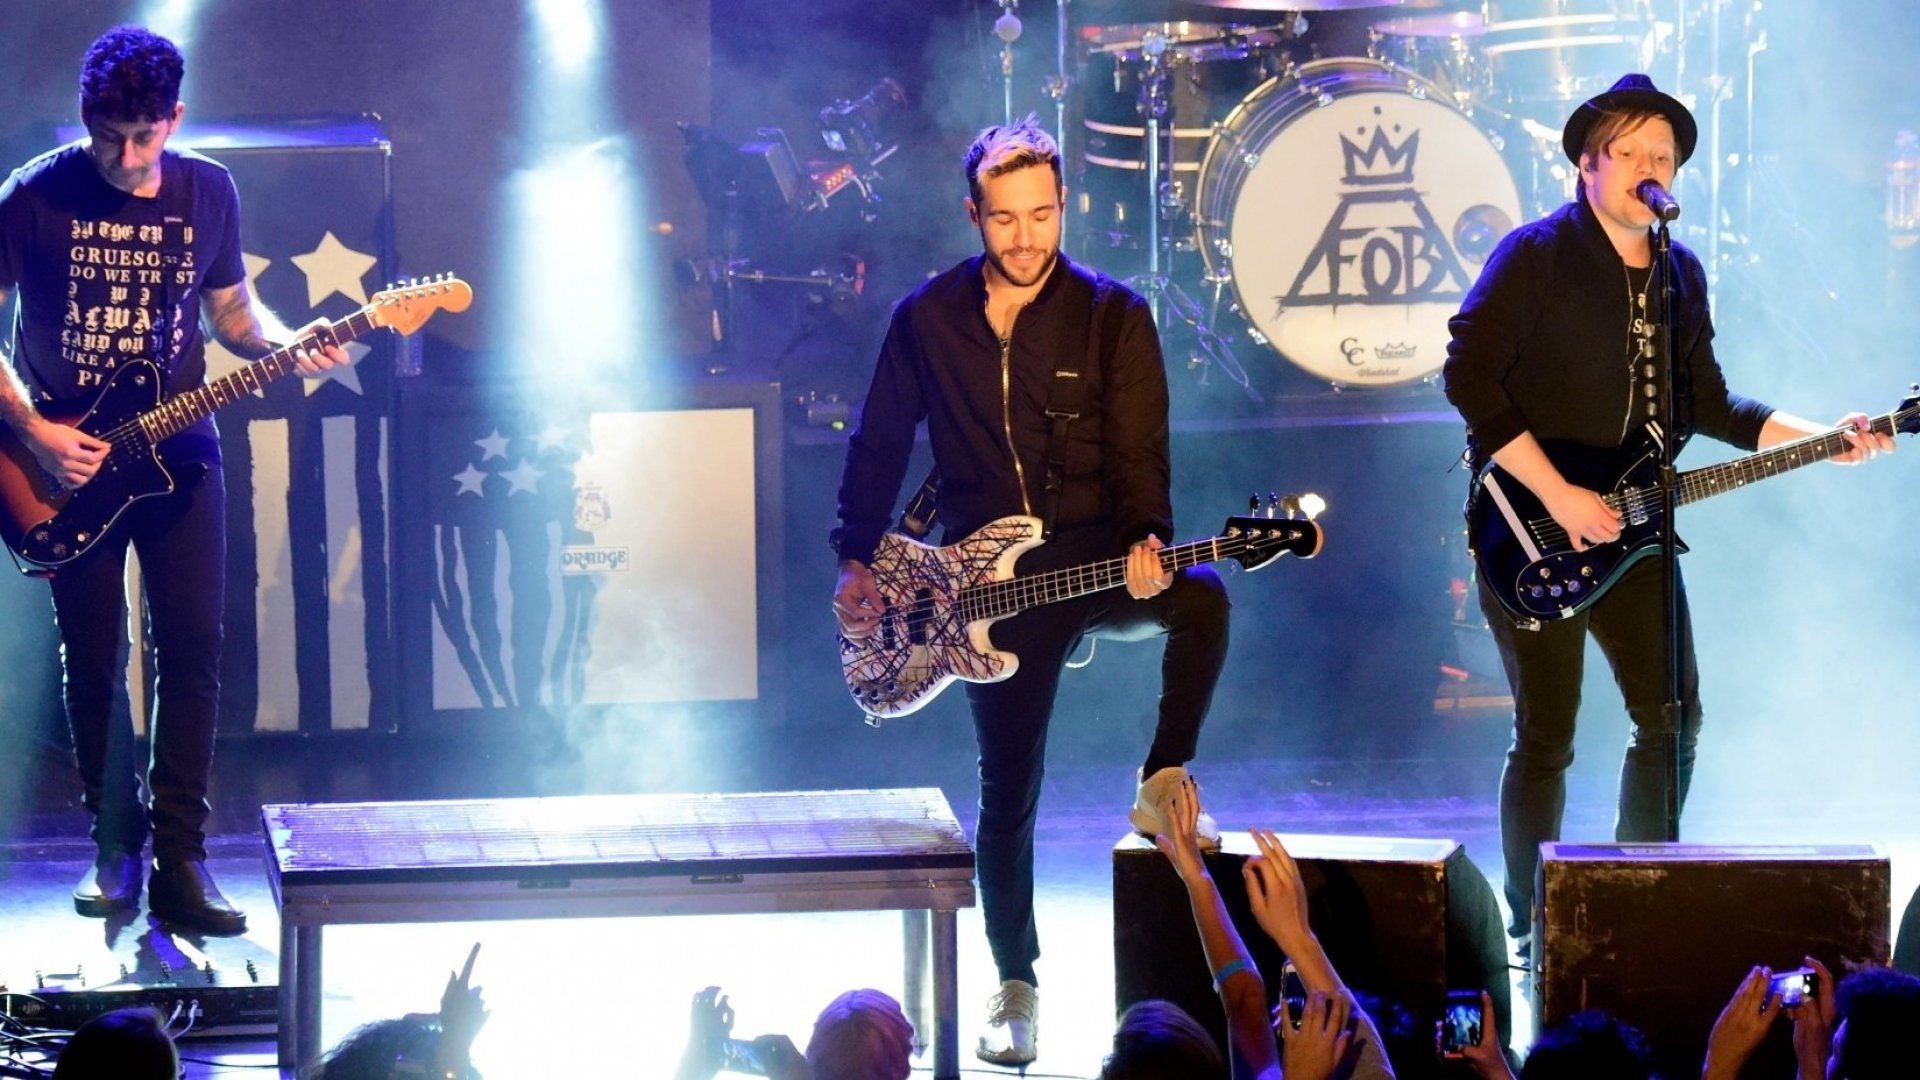 From left to right: Joe Trohman, Pete Wentz, and Patrick Stump of Fall Out Boy.